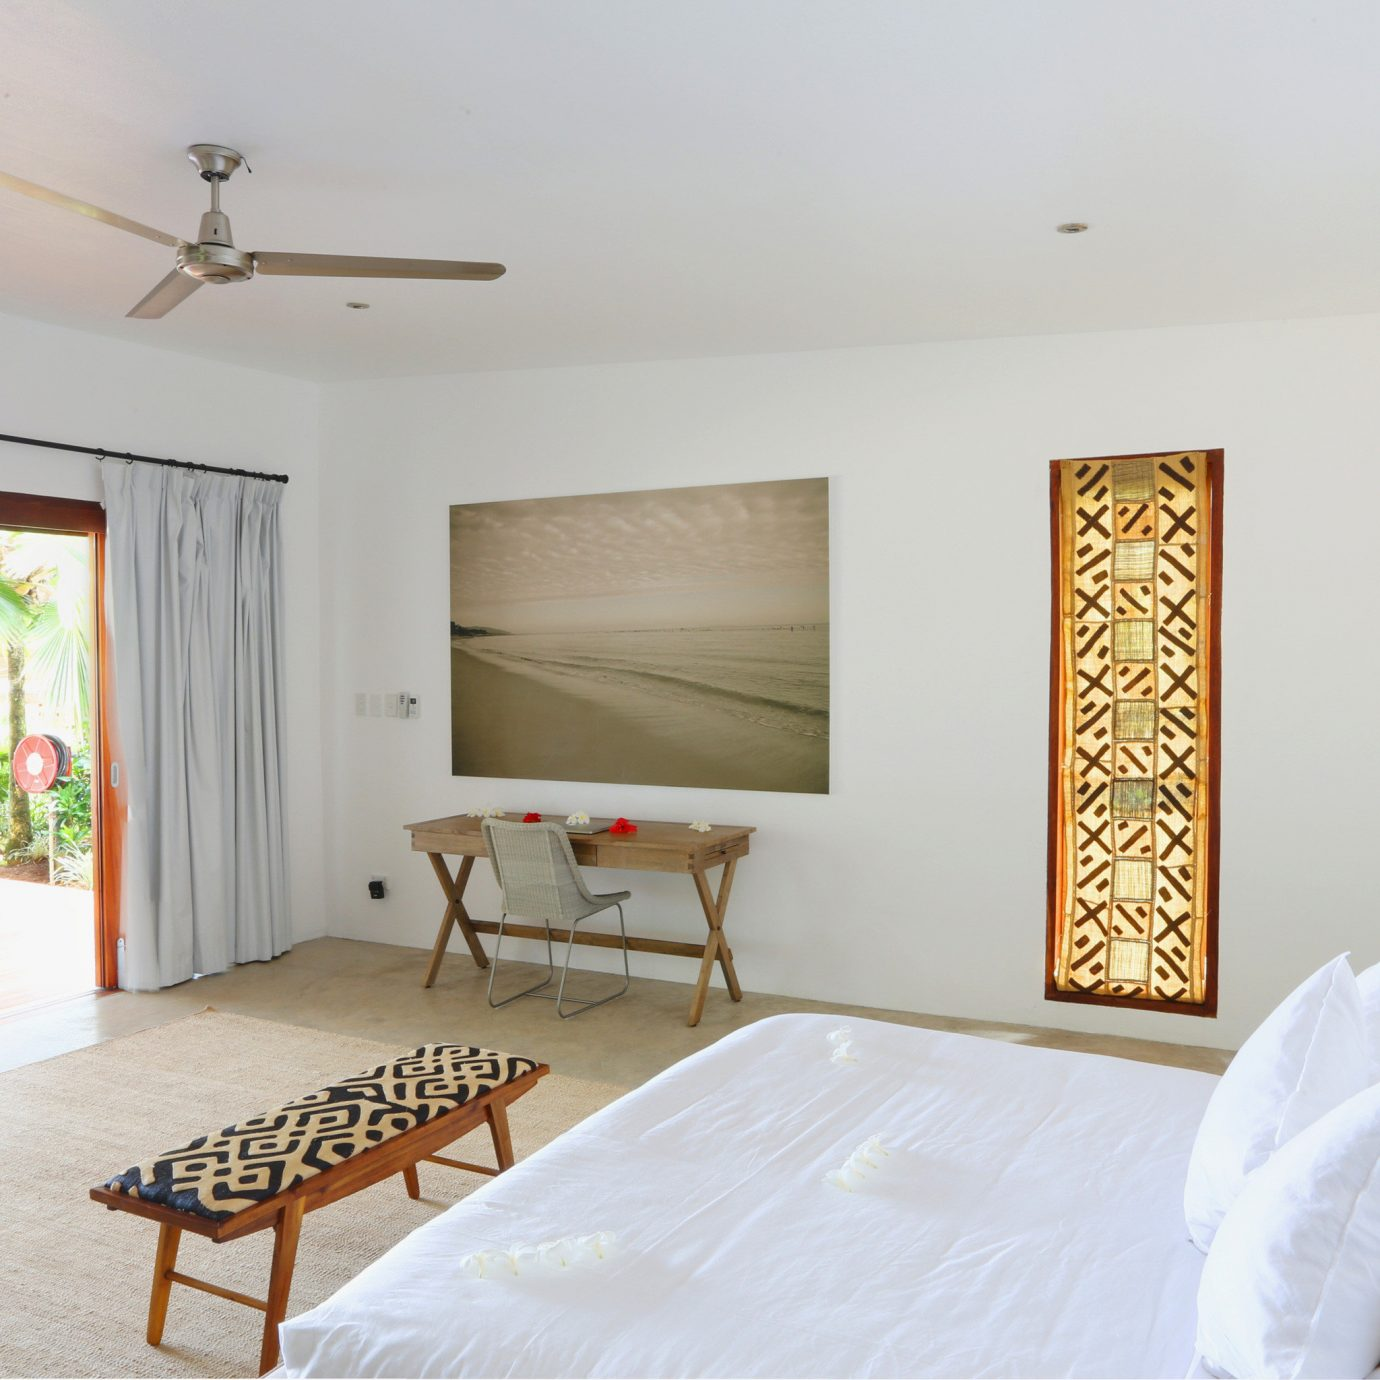 All-inclusive Beachfront Bedroom Honeymoon Resort Romance Romantic Waterfront property home cottage living room